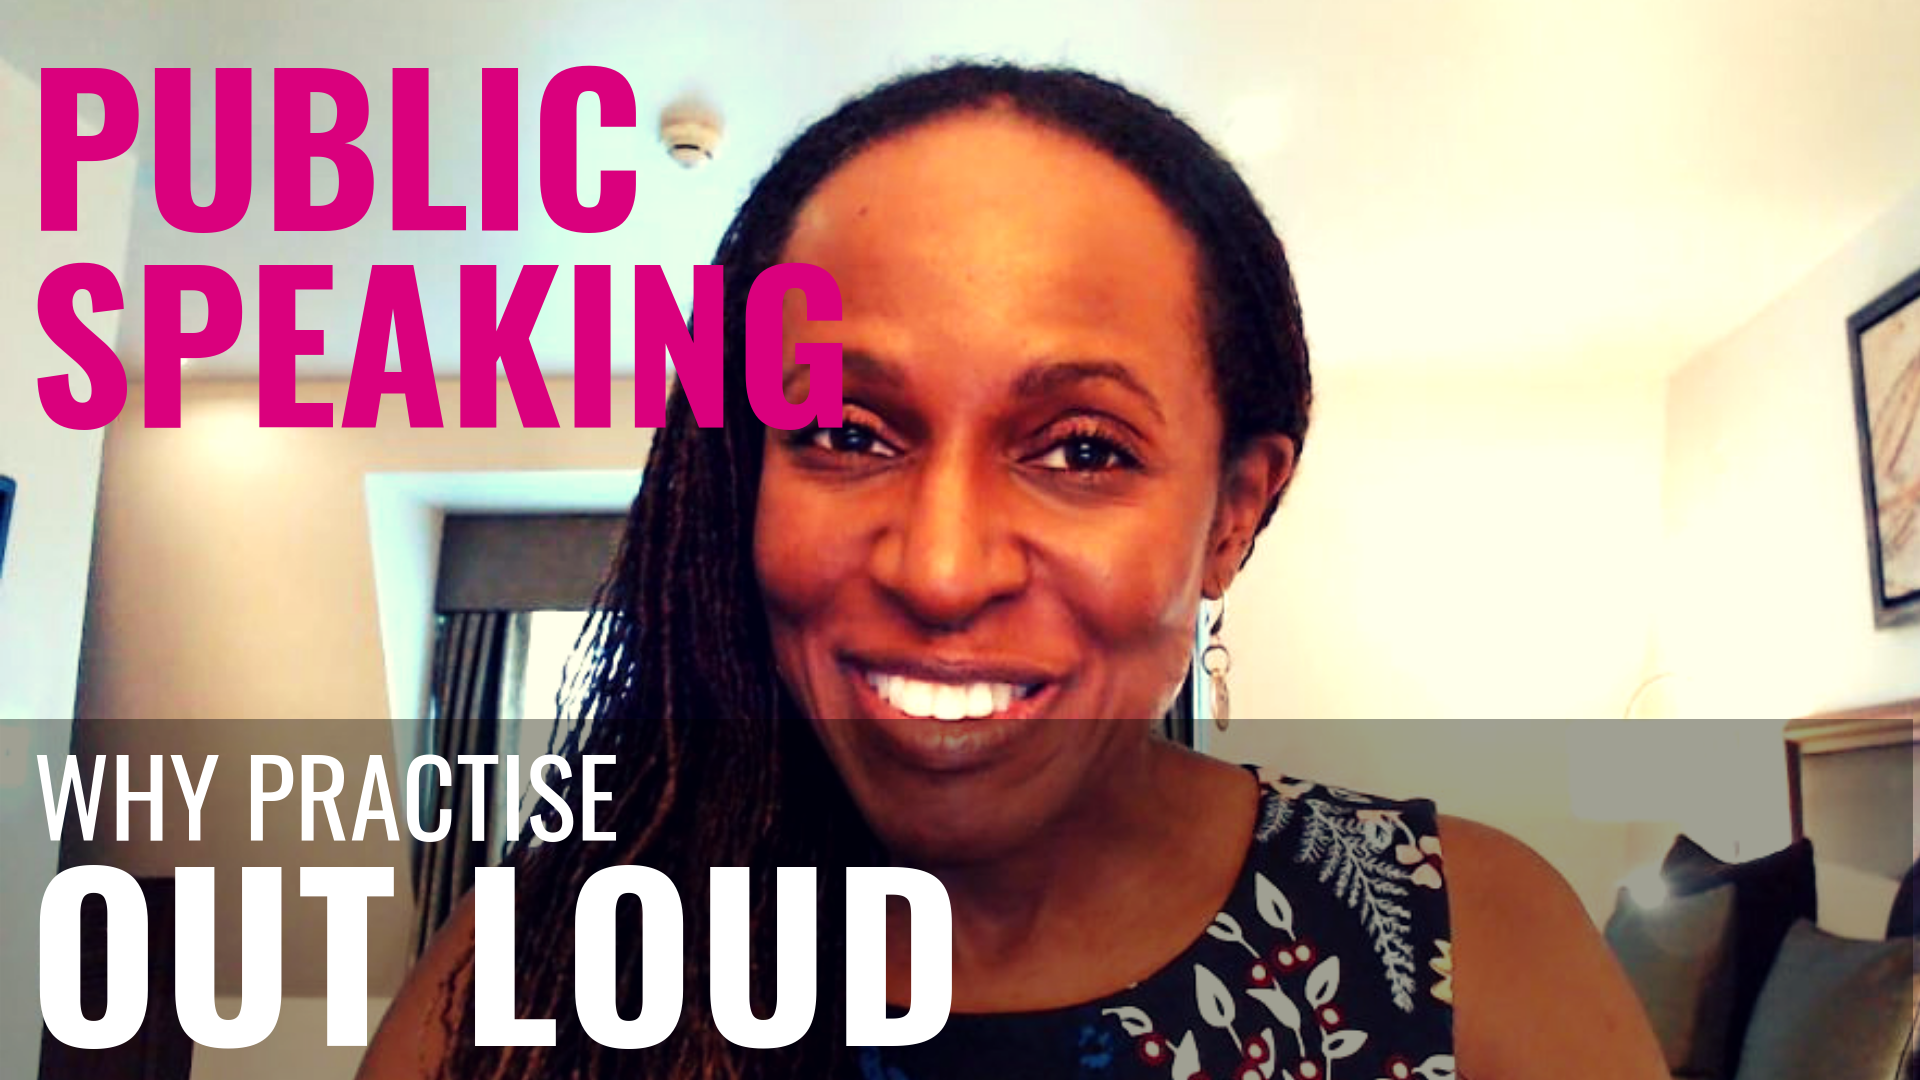 PUBLIC SPEAKING - Why practise OUT LOUD